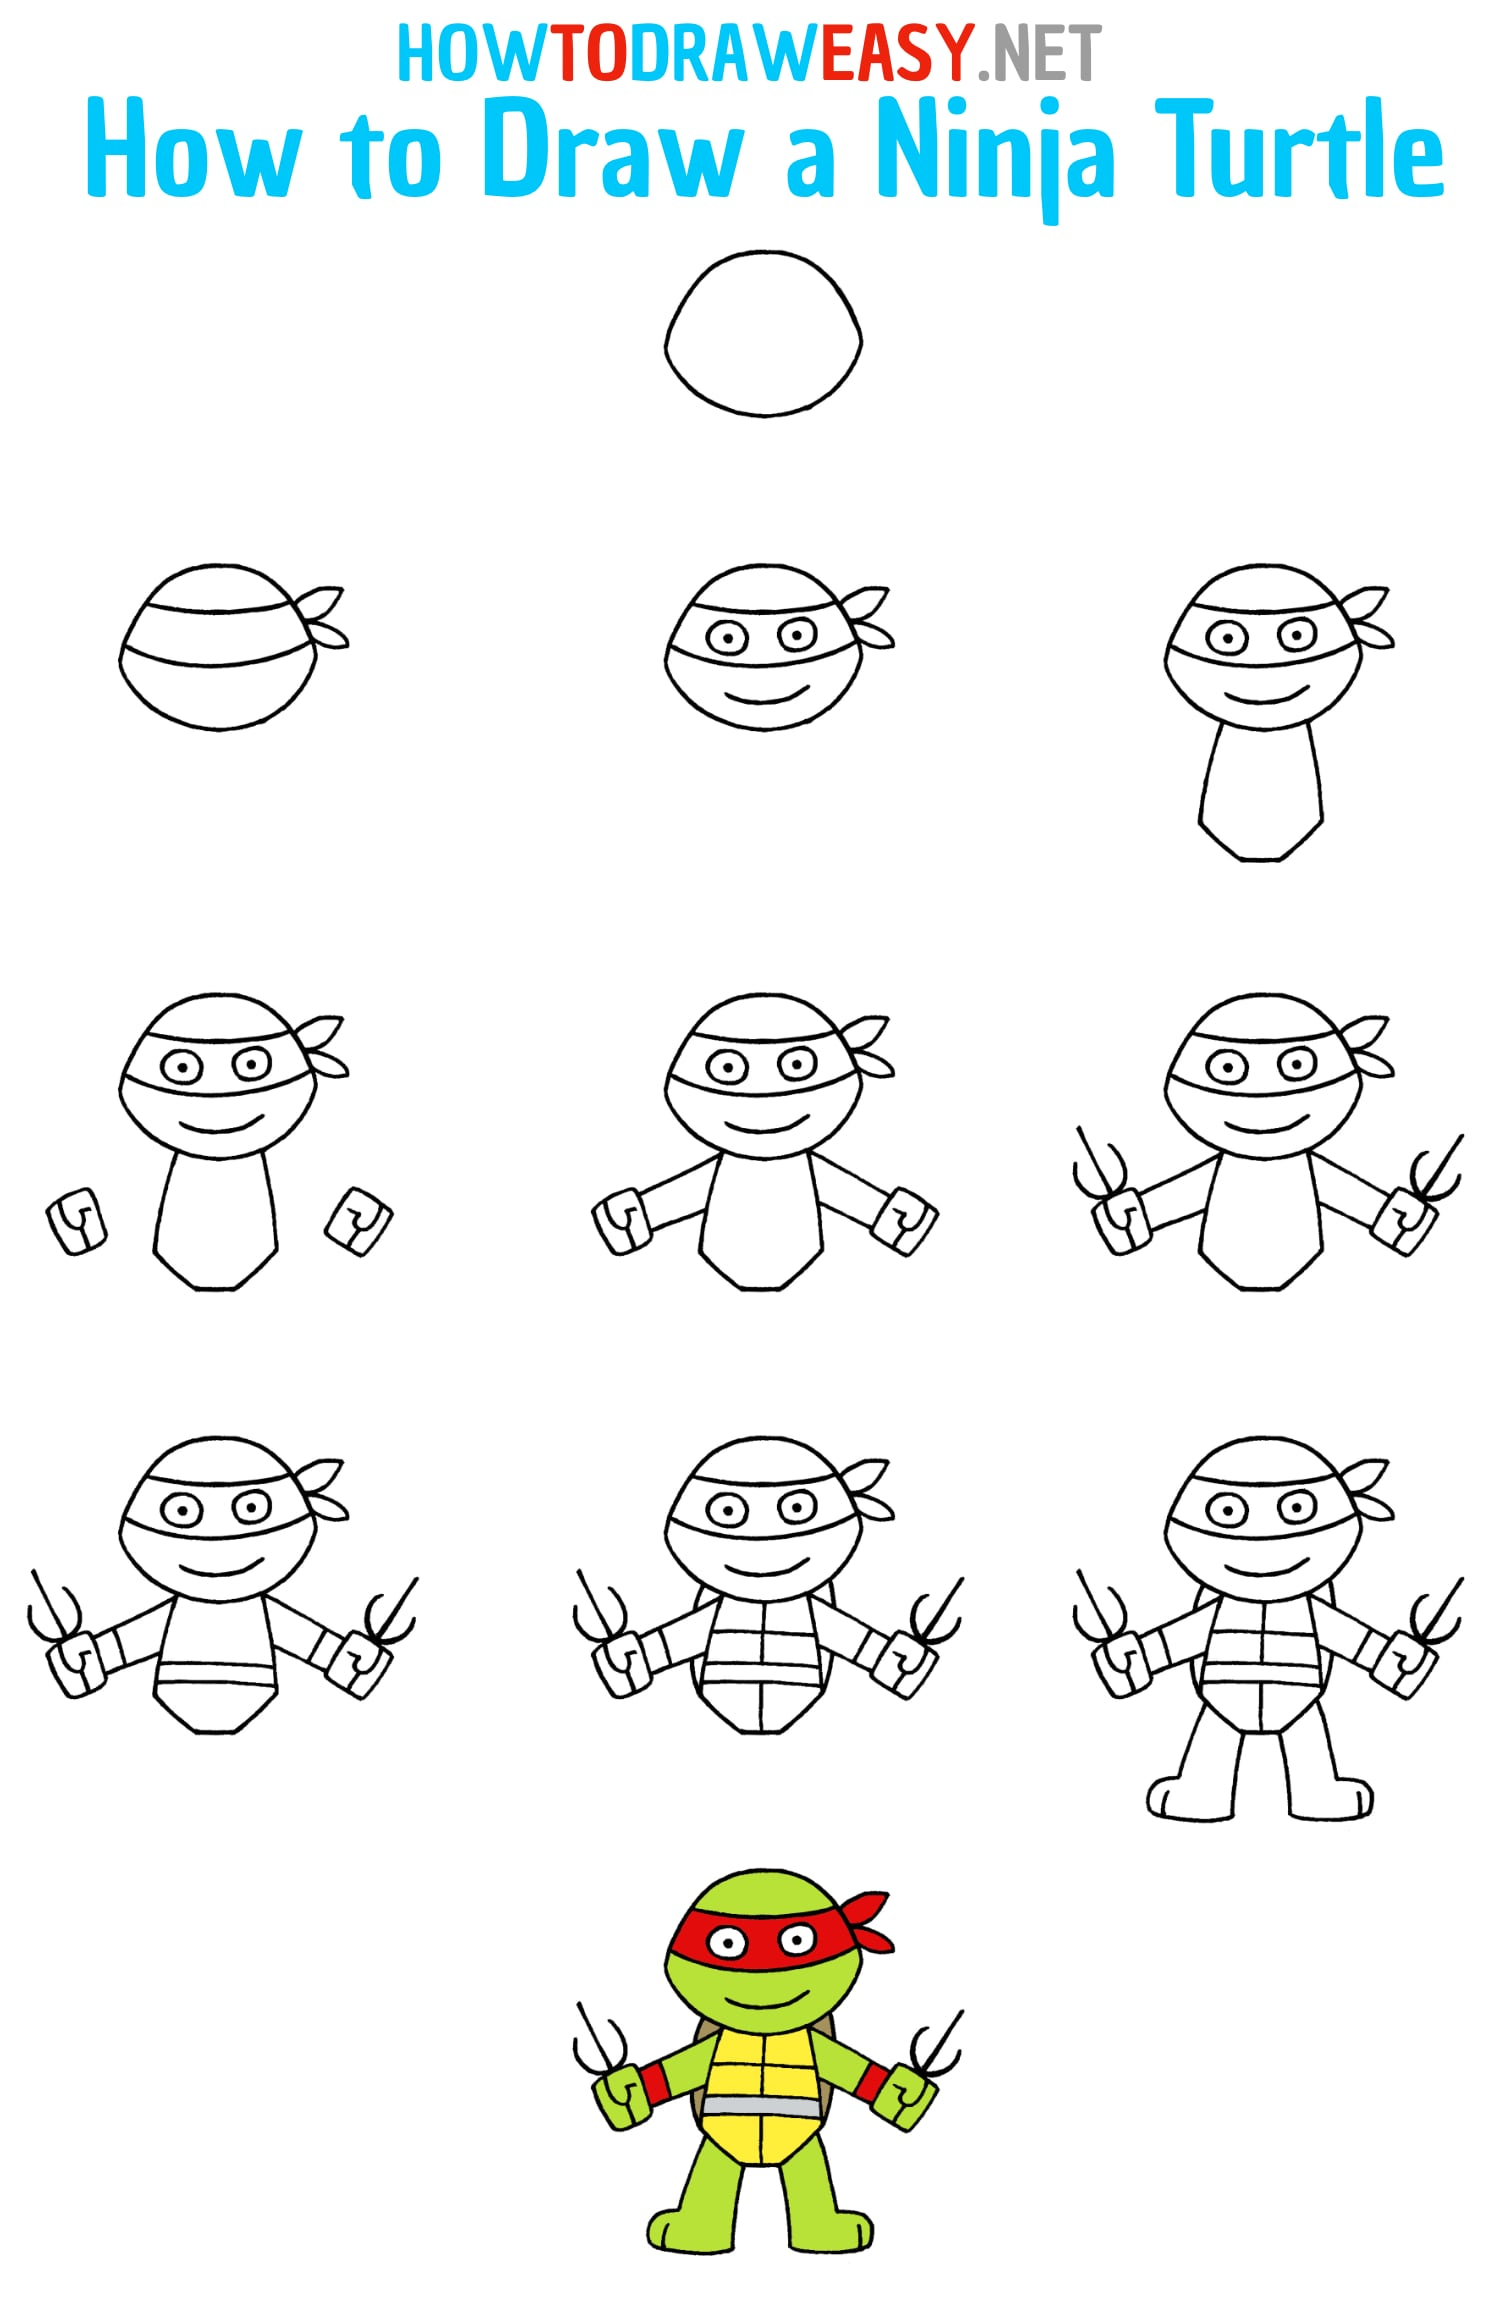 How to Draw a Ninja Turtle Step by Step